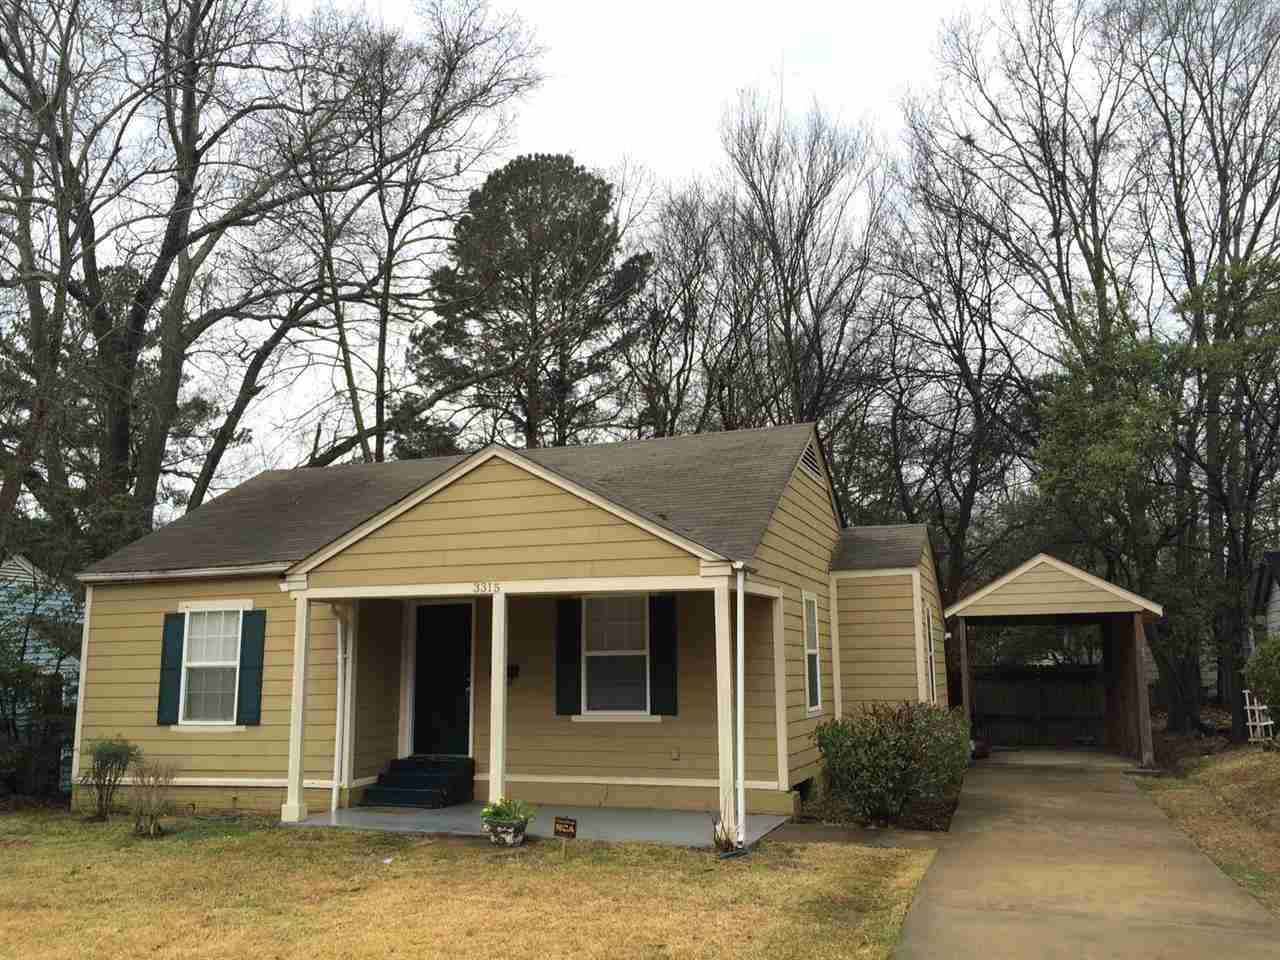 Rental Homes for Rent, ListingId:31963074, location: 3315 DOWNING ST Jackson 39216